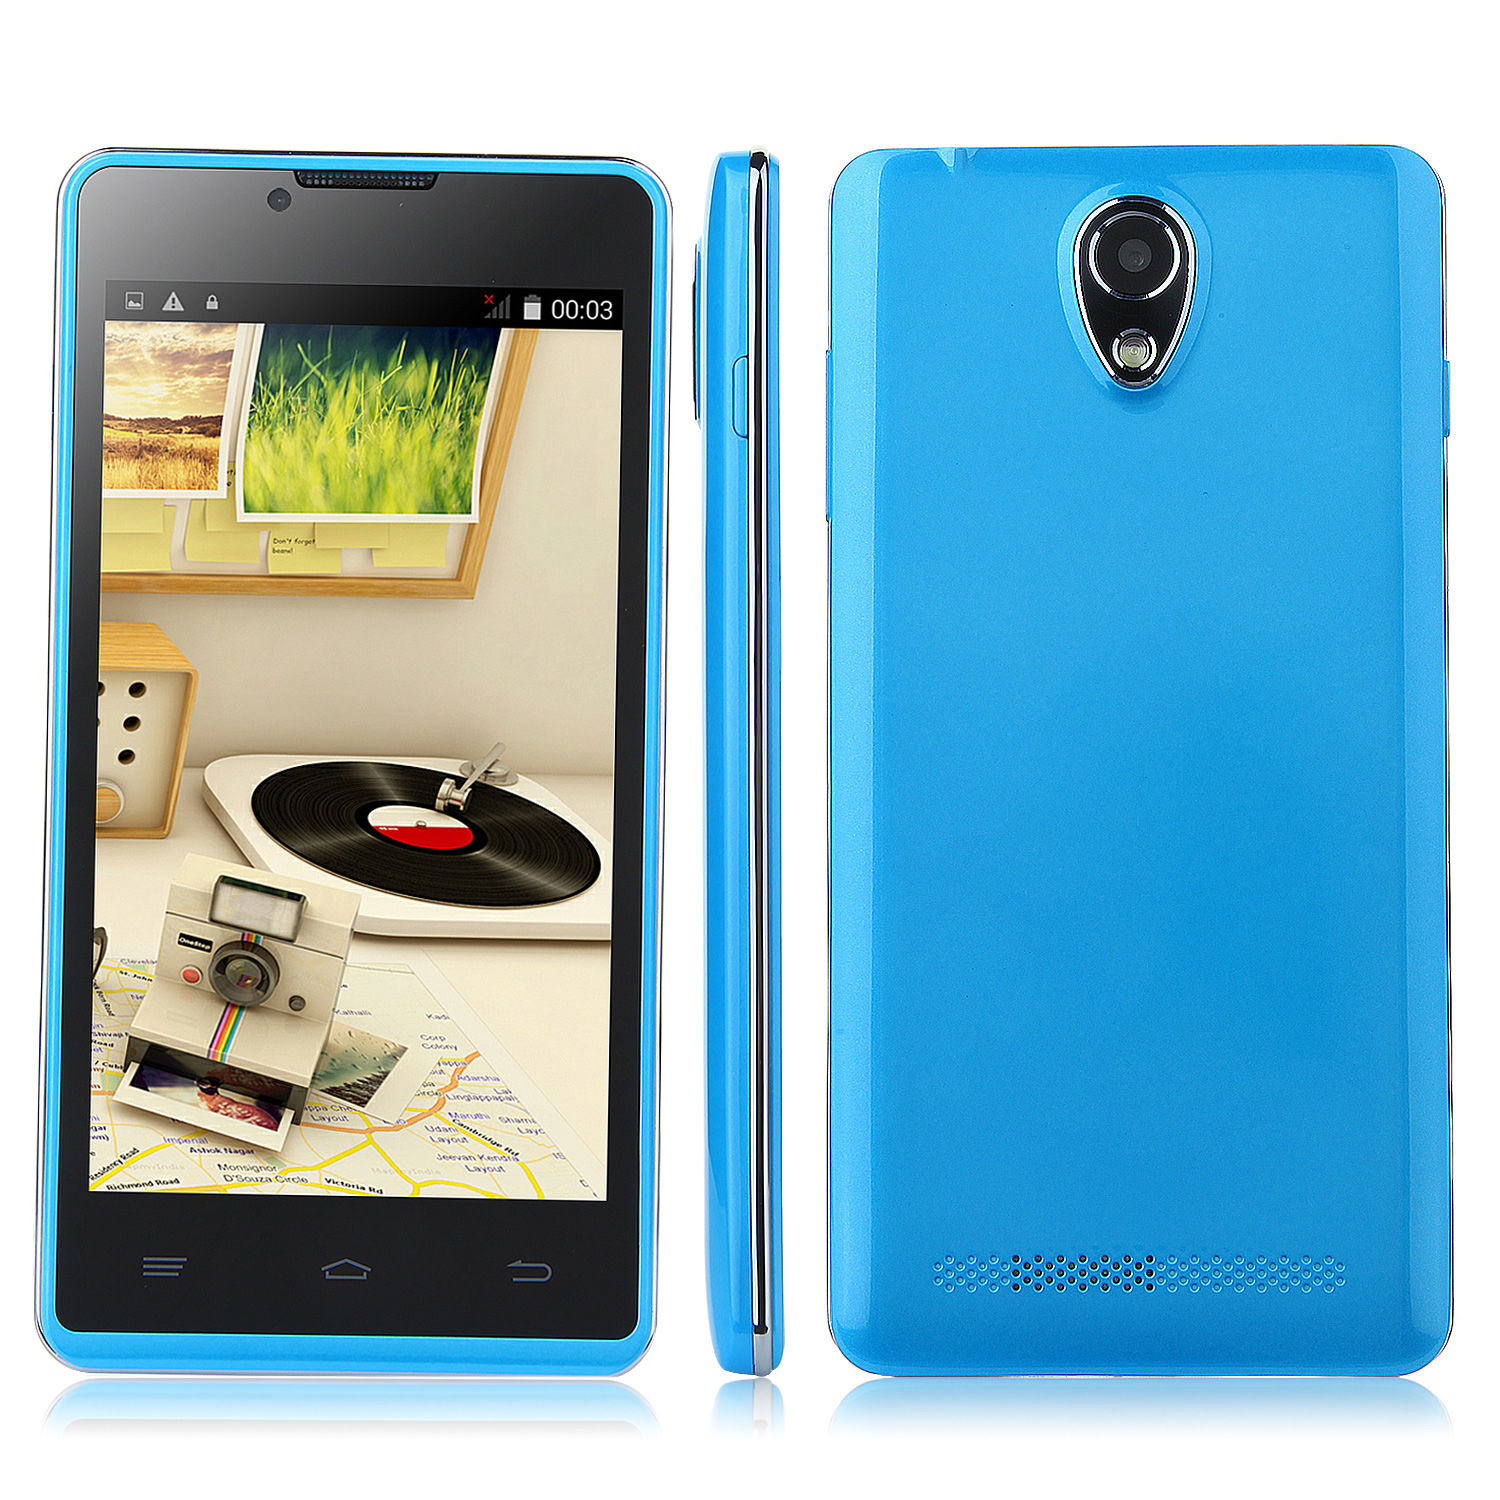 Tengda P9 Smartphone Android 4.4 MTK6572W 3G GPS 4.5 Inch - Blue